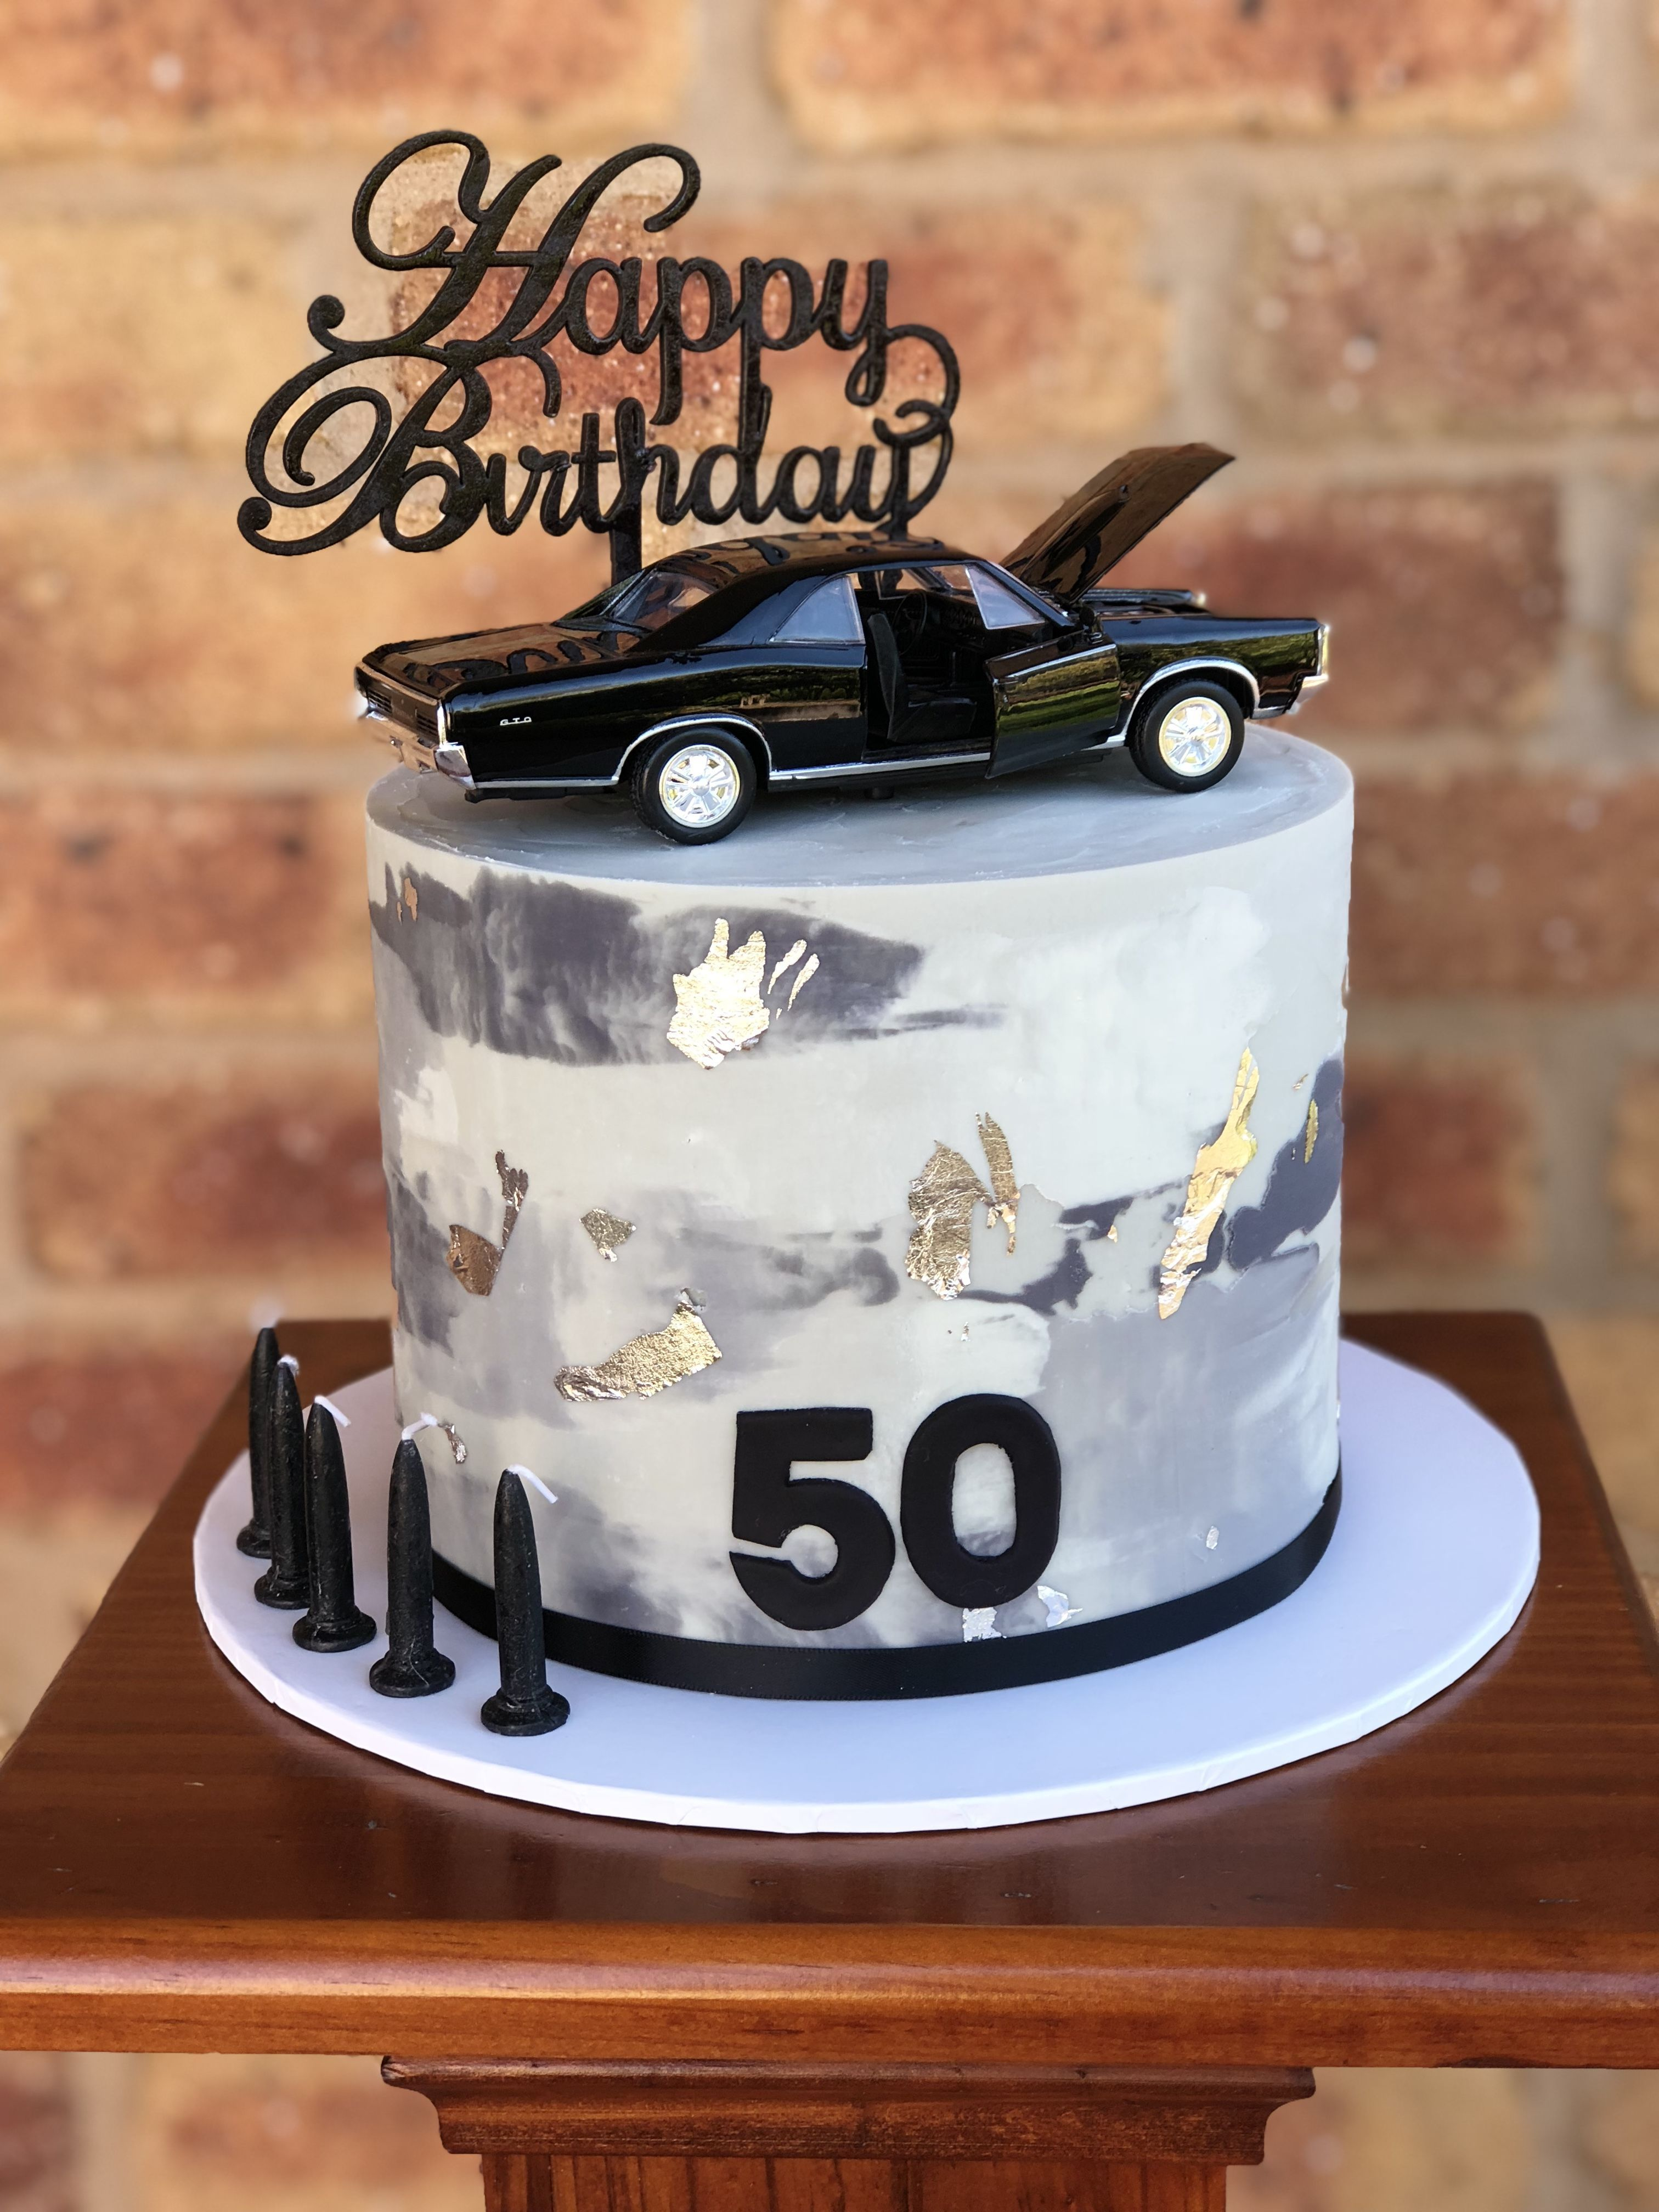 Astonishing Diy And Crafts Image By Zeyn In 2020 60Th Birthday Cakes Funny Birthday Cards Online Alyptdamsfinfo